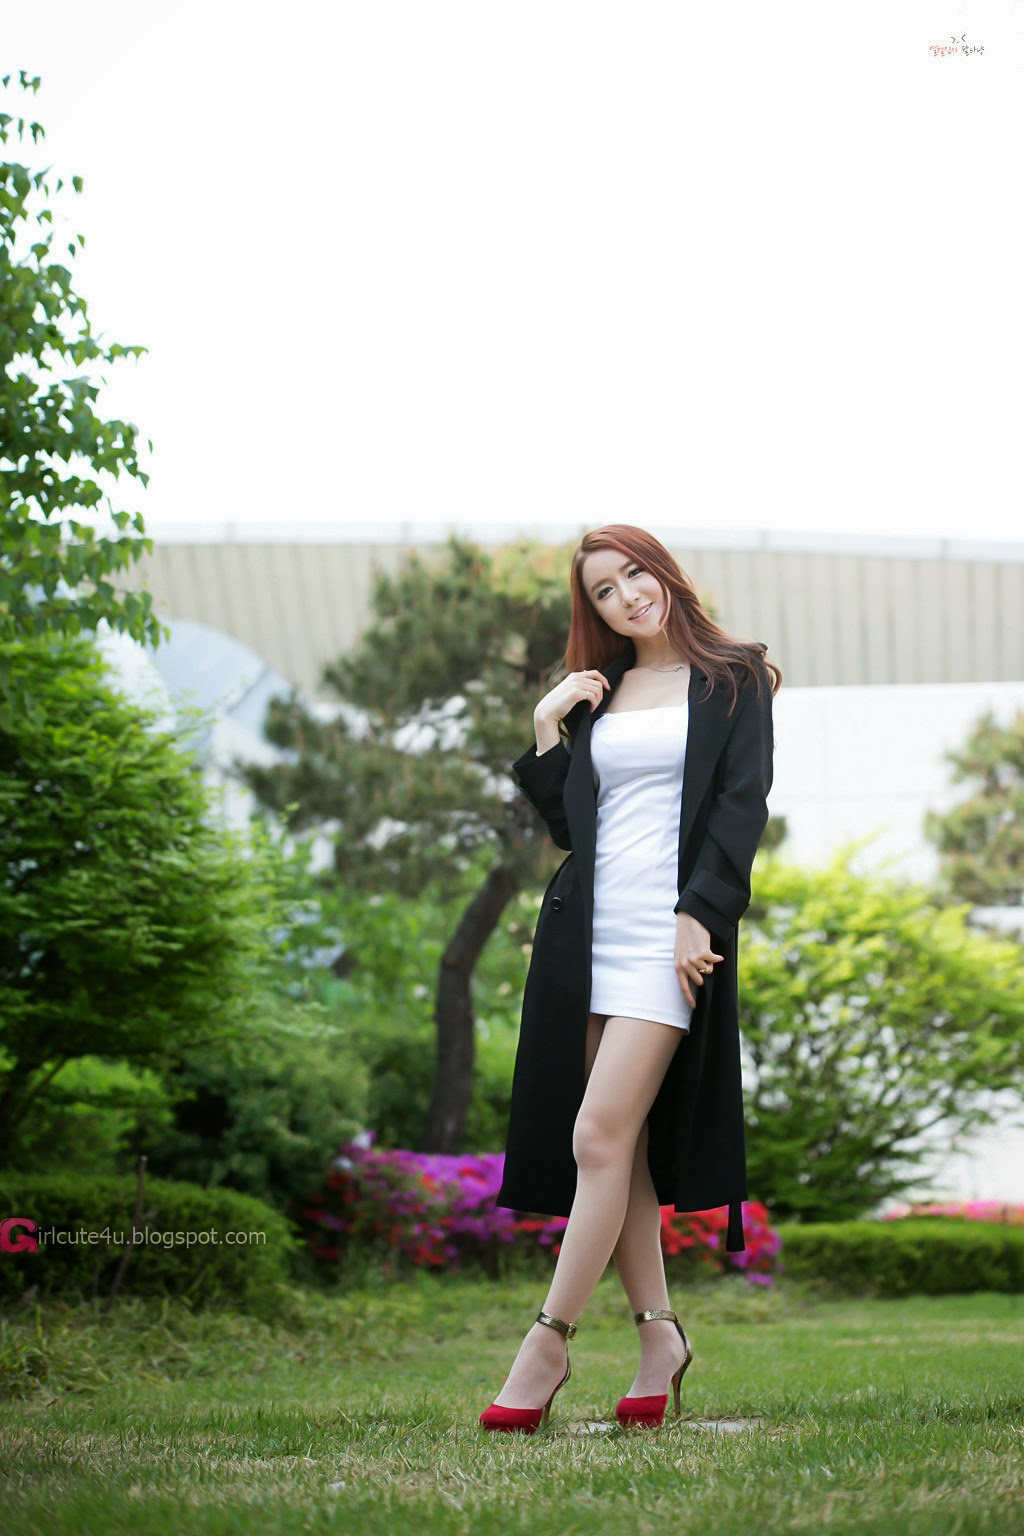 2 Lee Yeon Yoon - P&I 2014 - very cute asian girl-girlcute4u.blogspot.com